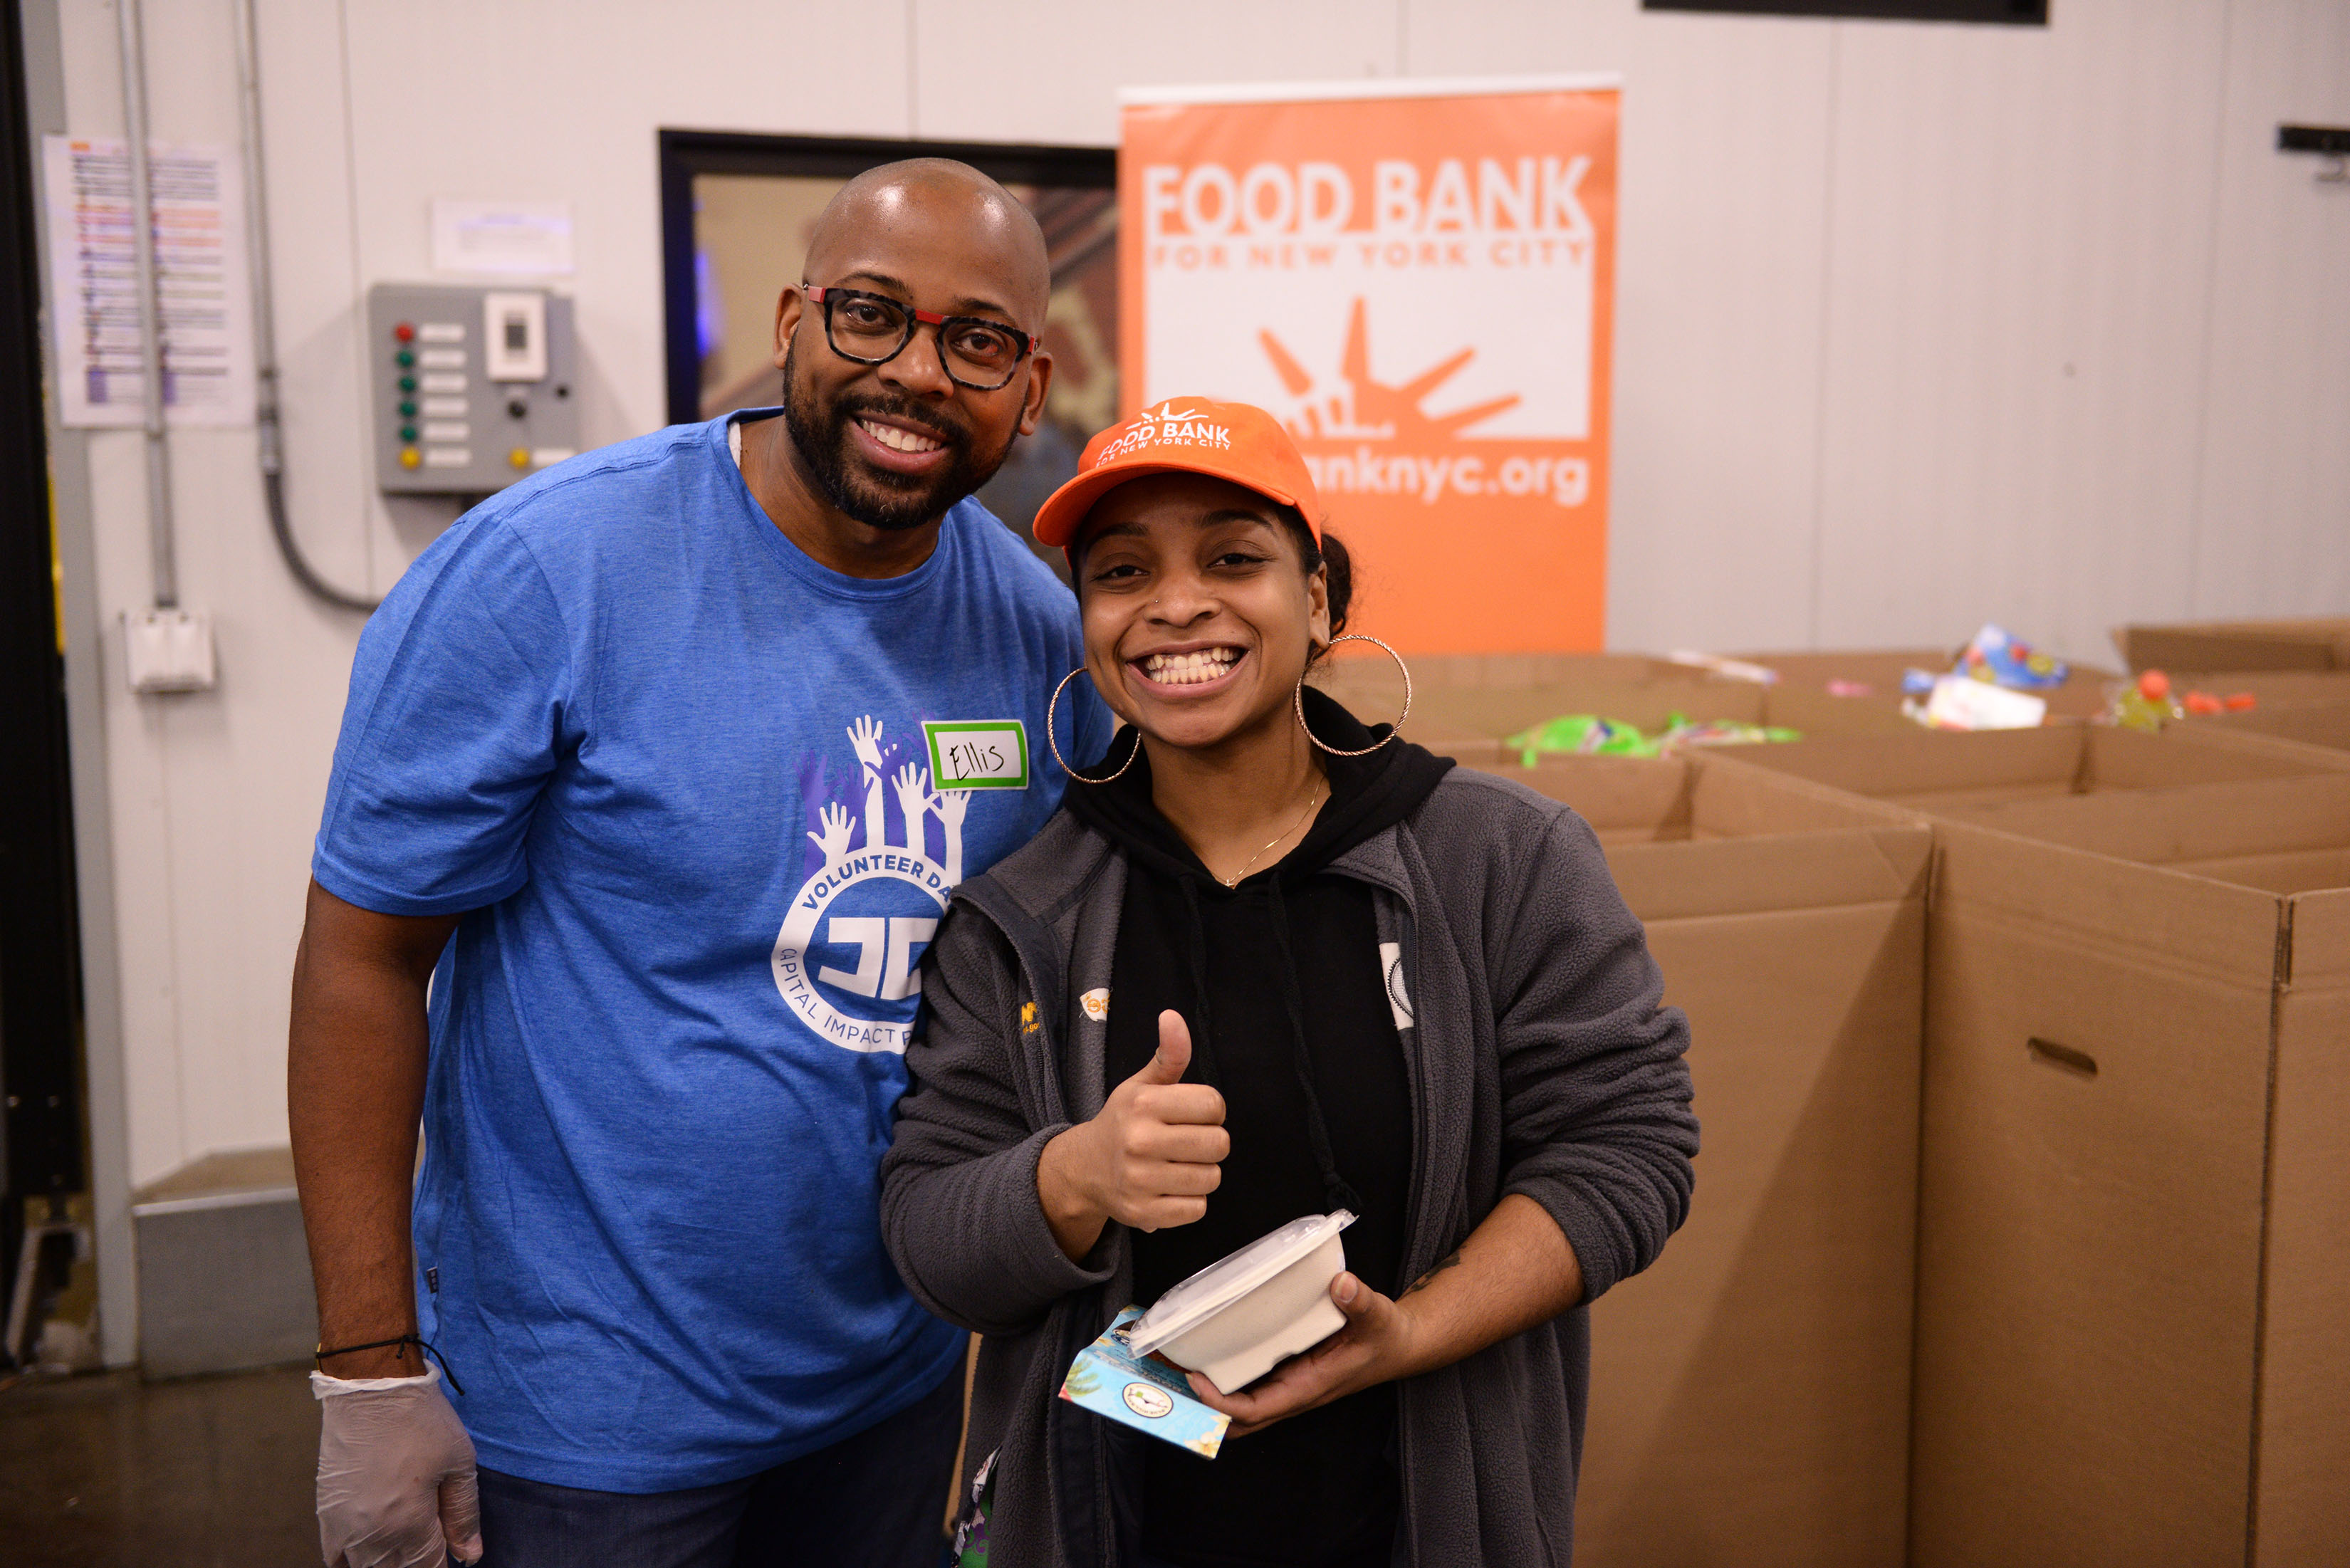 Capital Impact President & CEO Ellis Carr volunteering at the Food Bank of New York